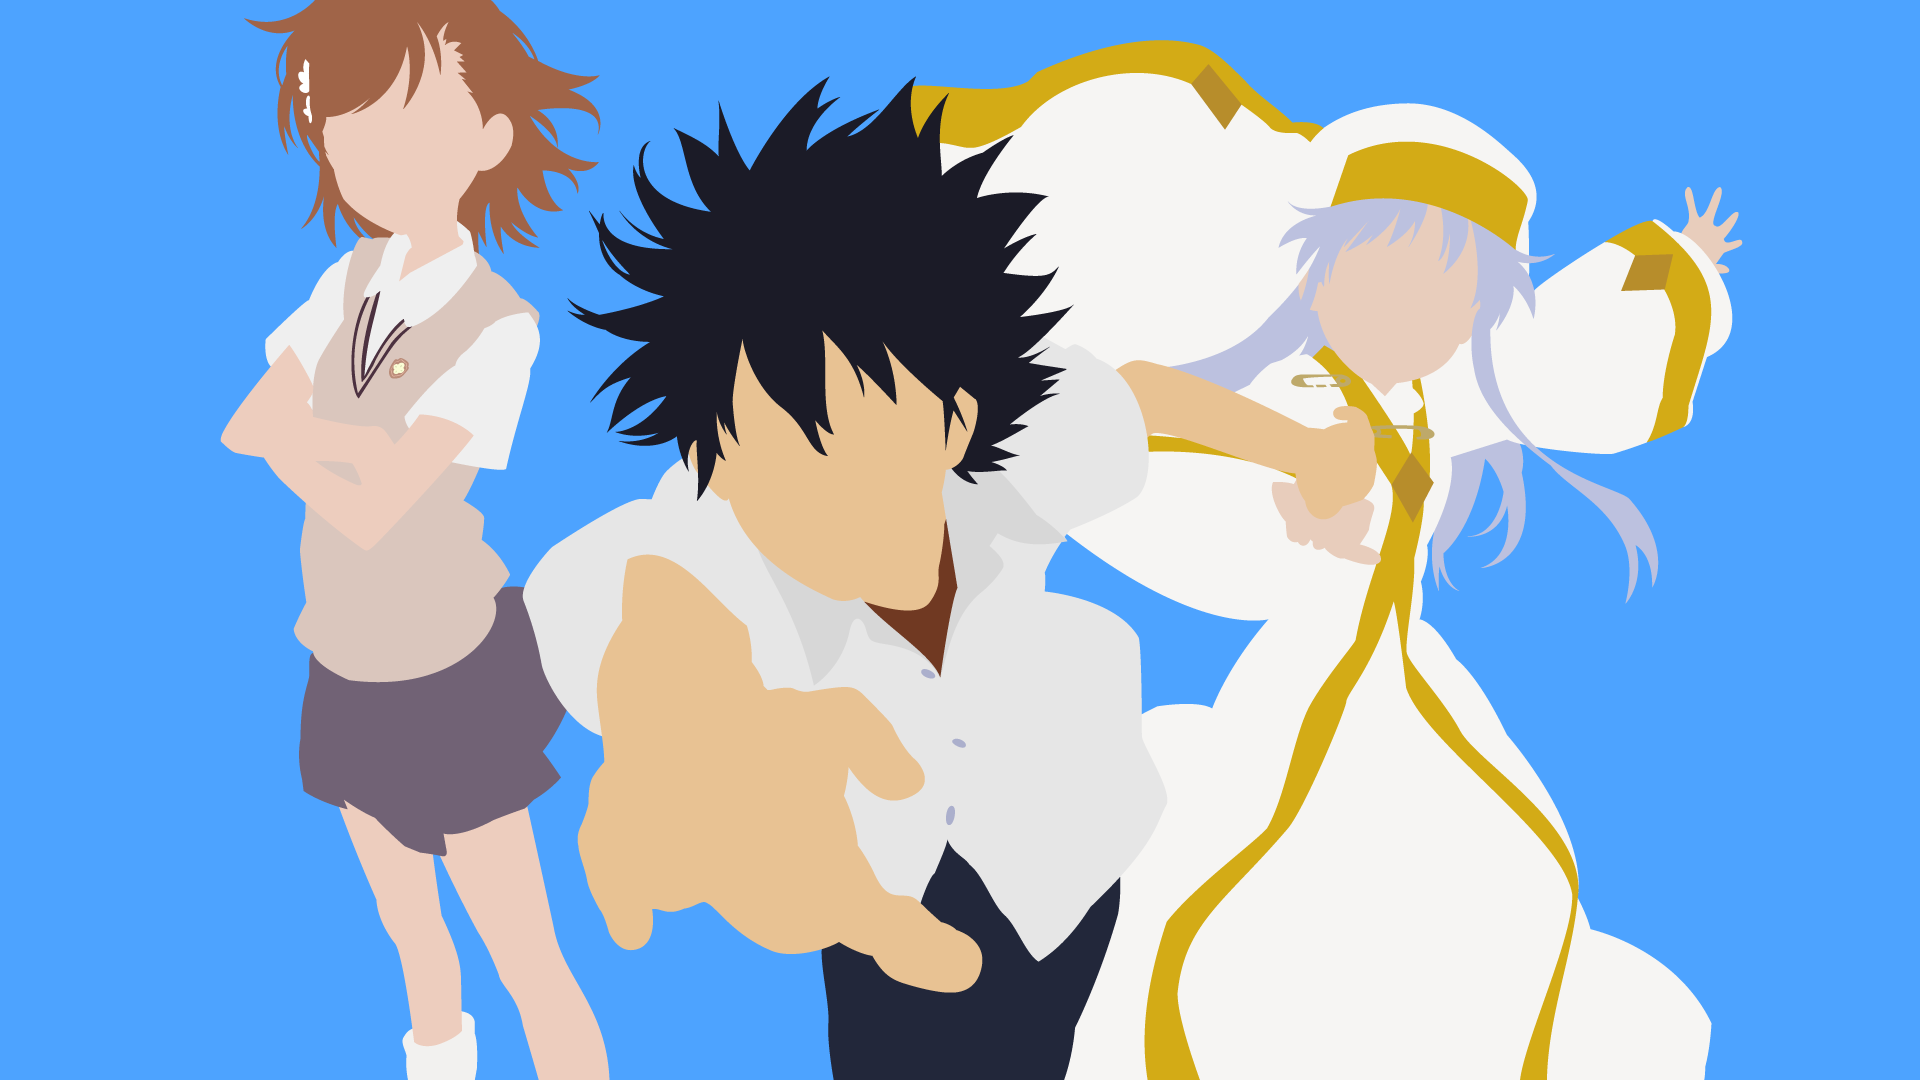 A Certain Magical Index Minimalist Wallpaper By Zugzai On Deviantart